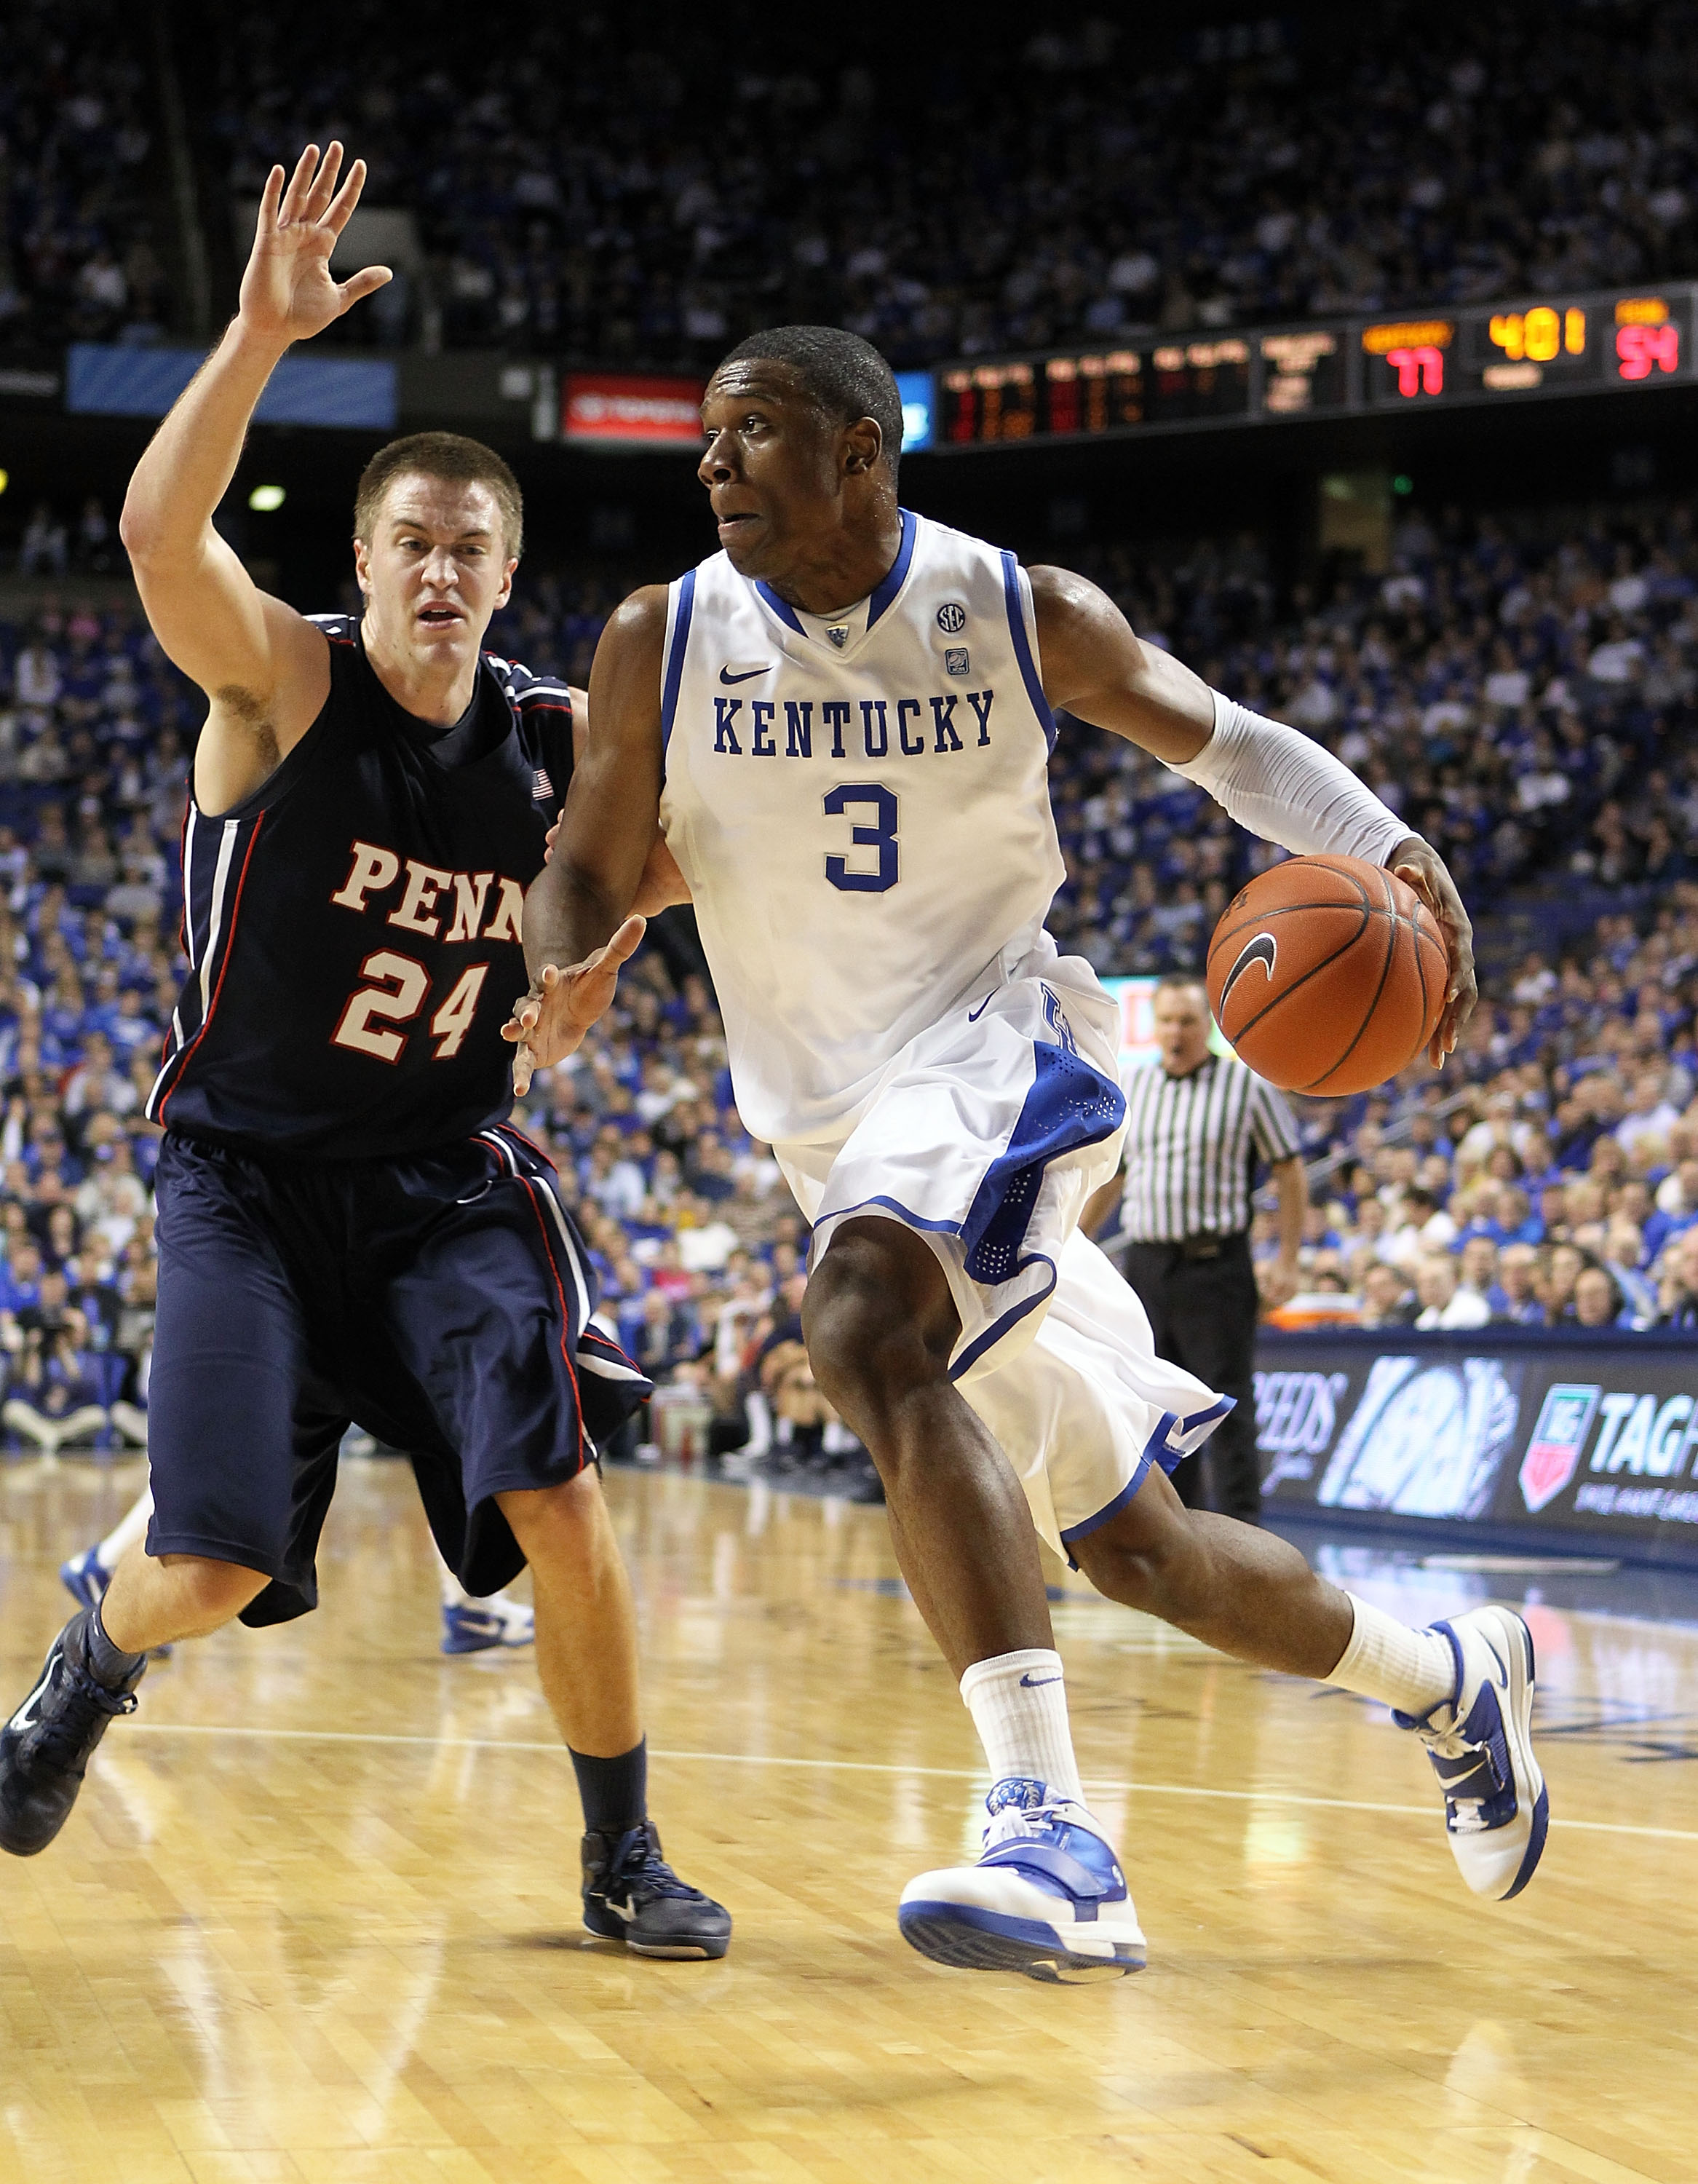 LEXINGTON, KY - JANUARY 03: Terrence Jones #3 of the Kentucky Wildcats dribbles the ball while defended by Jack Eggleston #24 of the Penn Quakers at Rupp Arena on January 3, 2011 in Lexington, Kentucky.  Kentucky won 86-62.  (Photo by Andy Lyons/Getty Ima